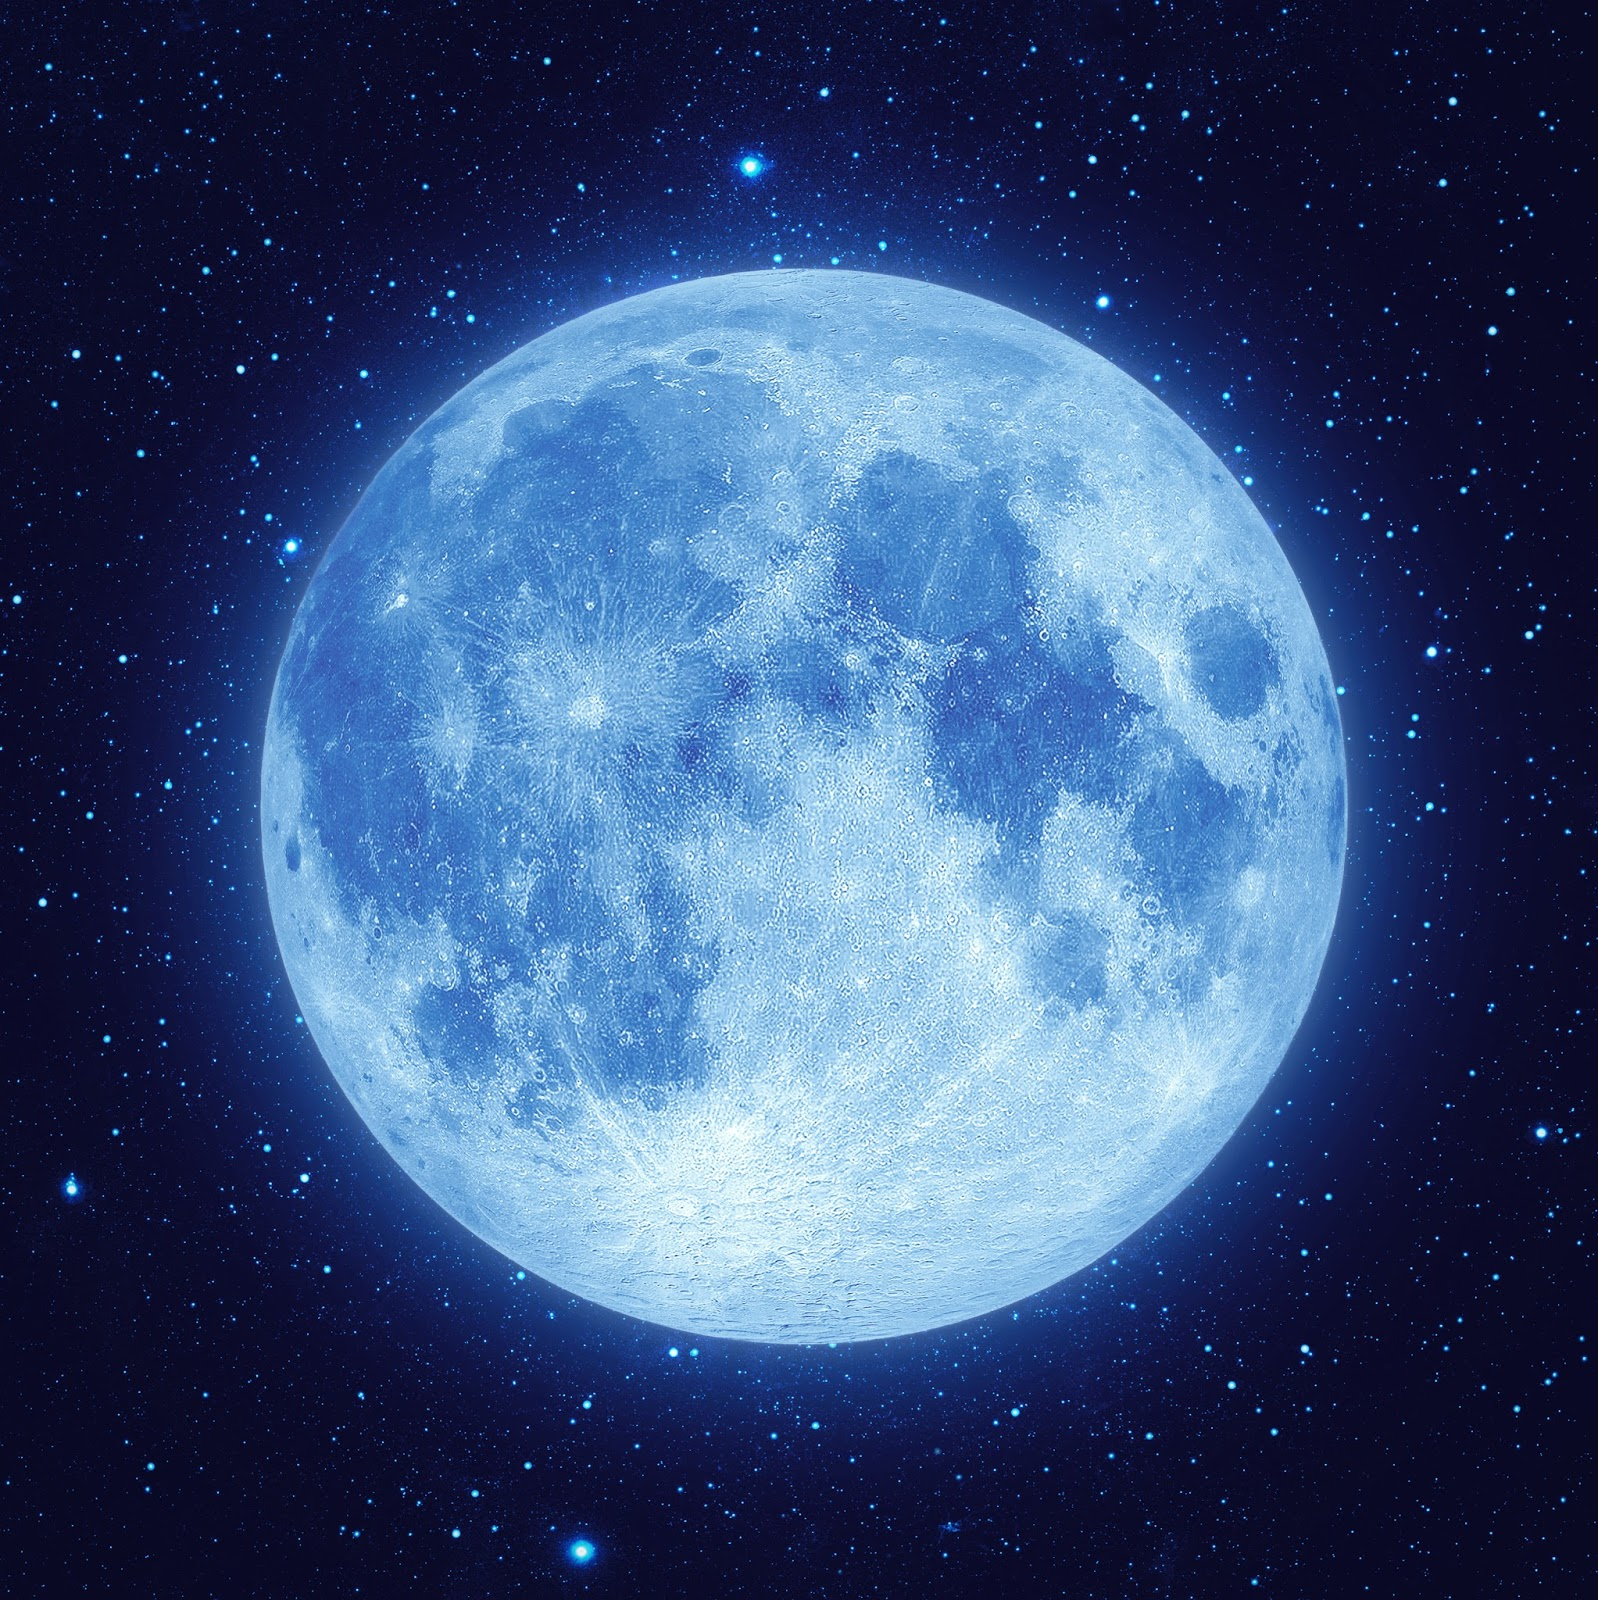 Another Definition Of Blue Moon Is A Twinge Diffe Some Months Have Two Full Moons Using This The Second